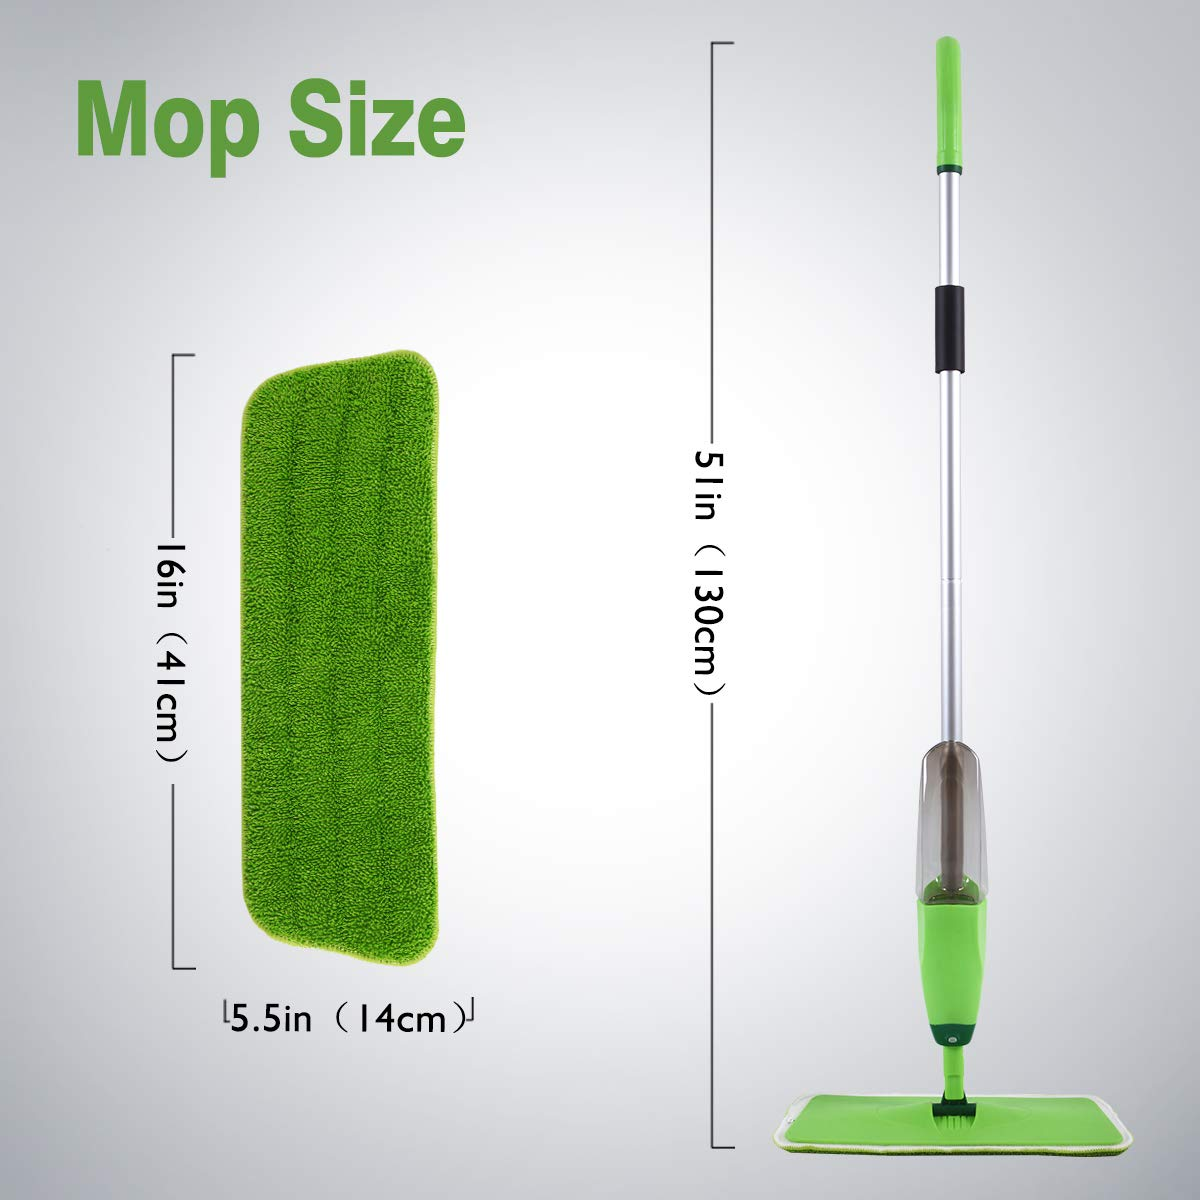 Laminate 2 pcs Reusable Microfibre Pads 180 Degree Rotating Easy to Clean for Hardwood Floor MAYSHINE Spray Mop Floor Mops Tile MSUS19010402 Wood